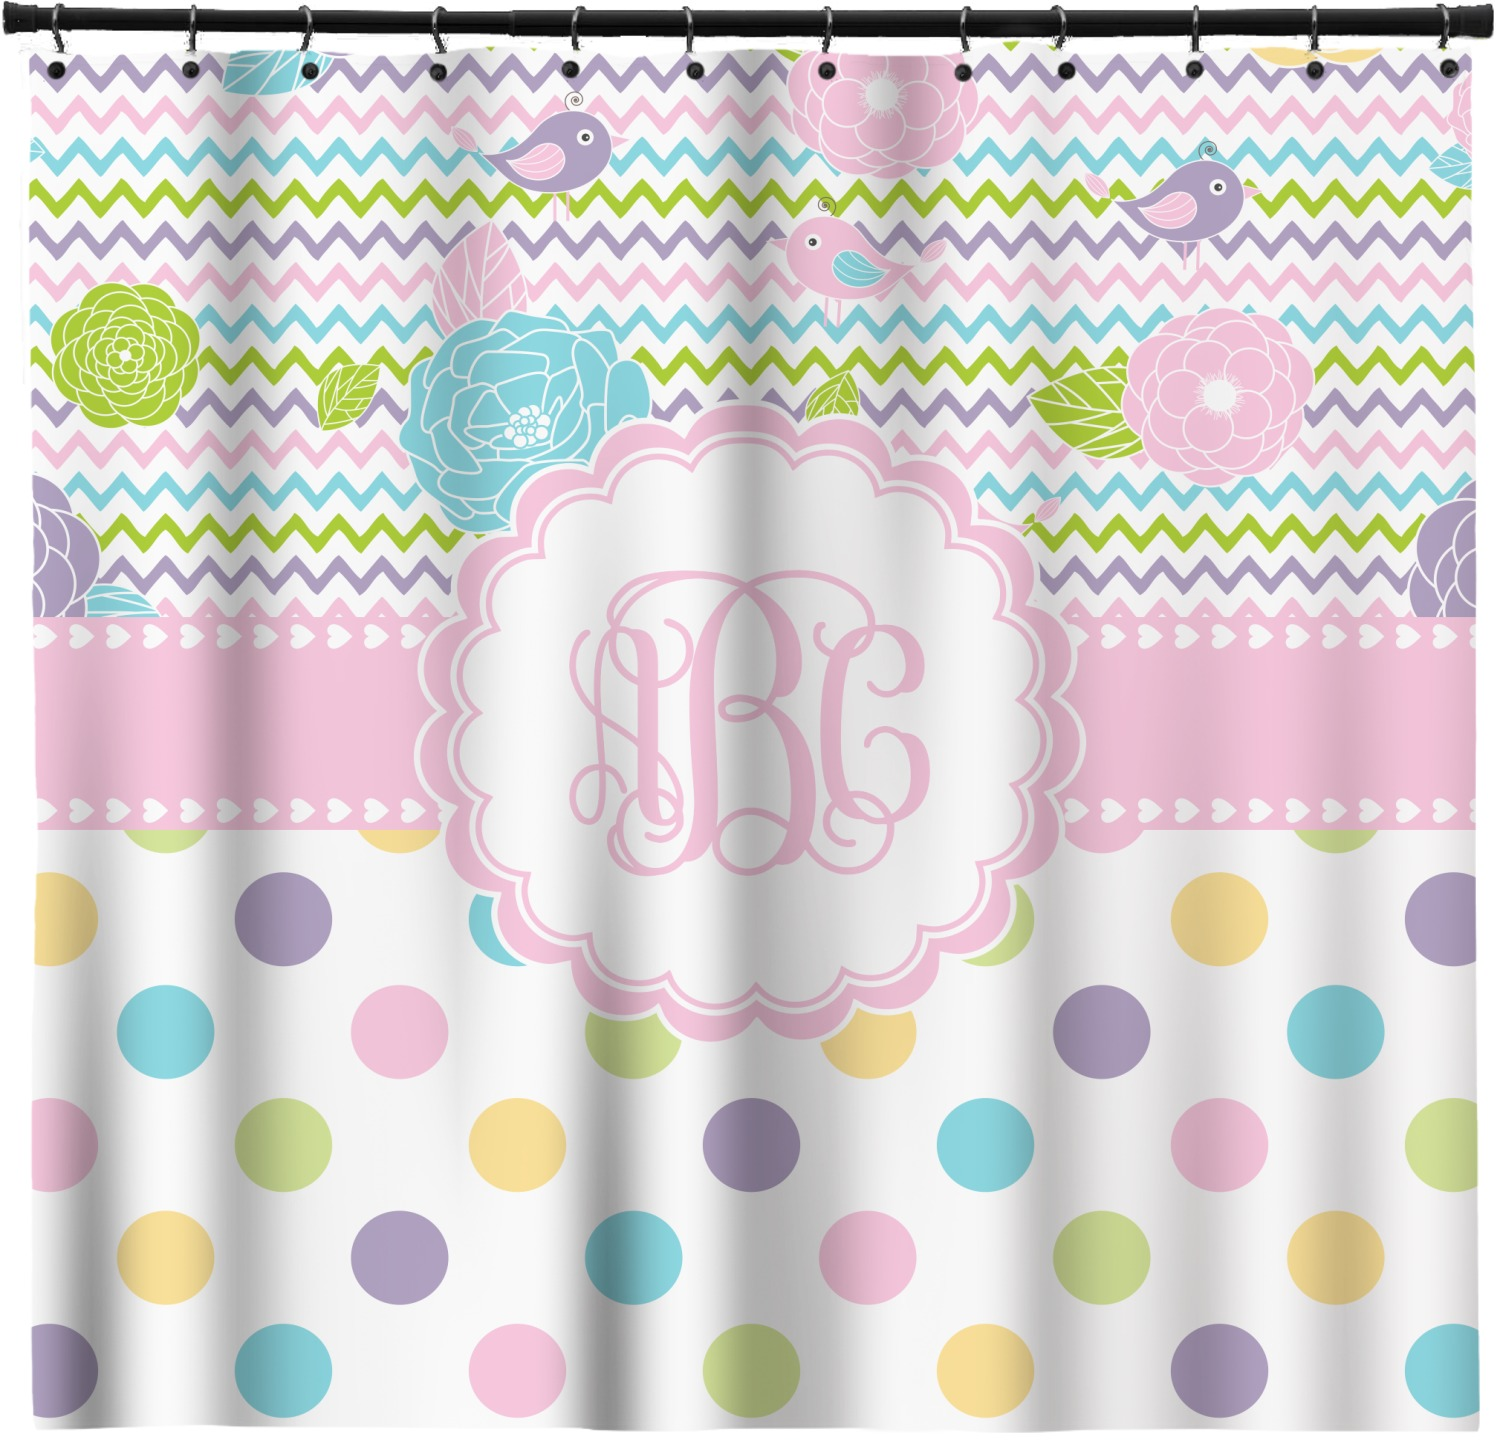 Girly Girl Shower Curtain